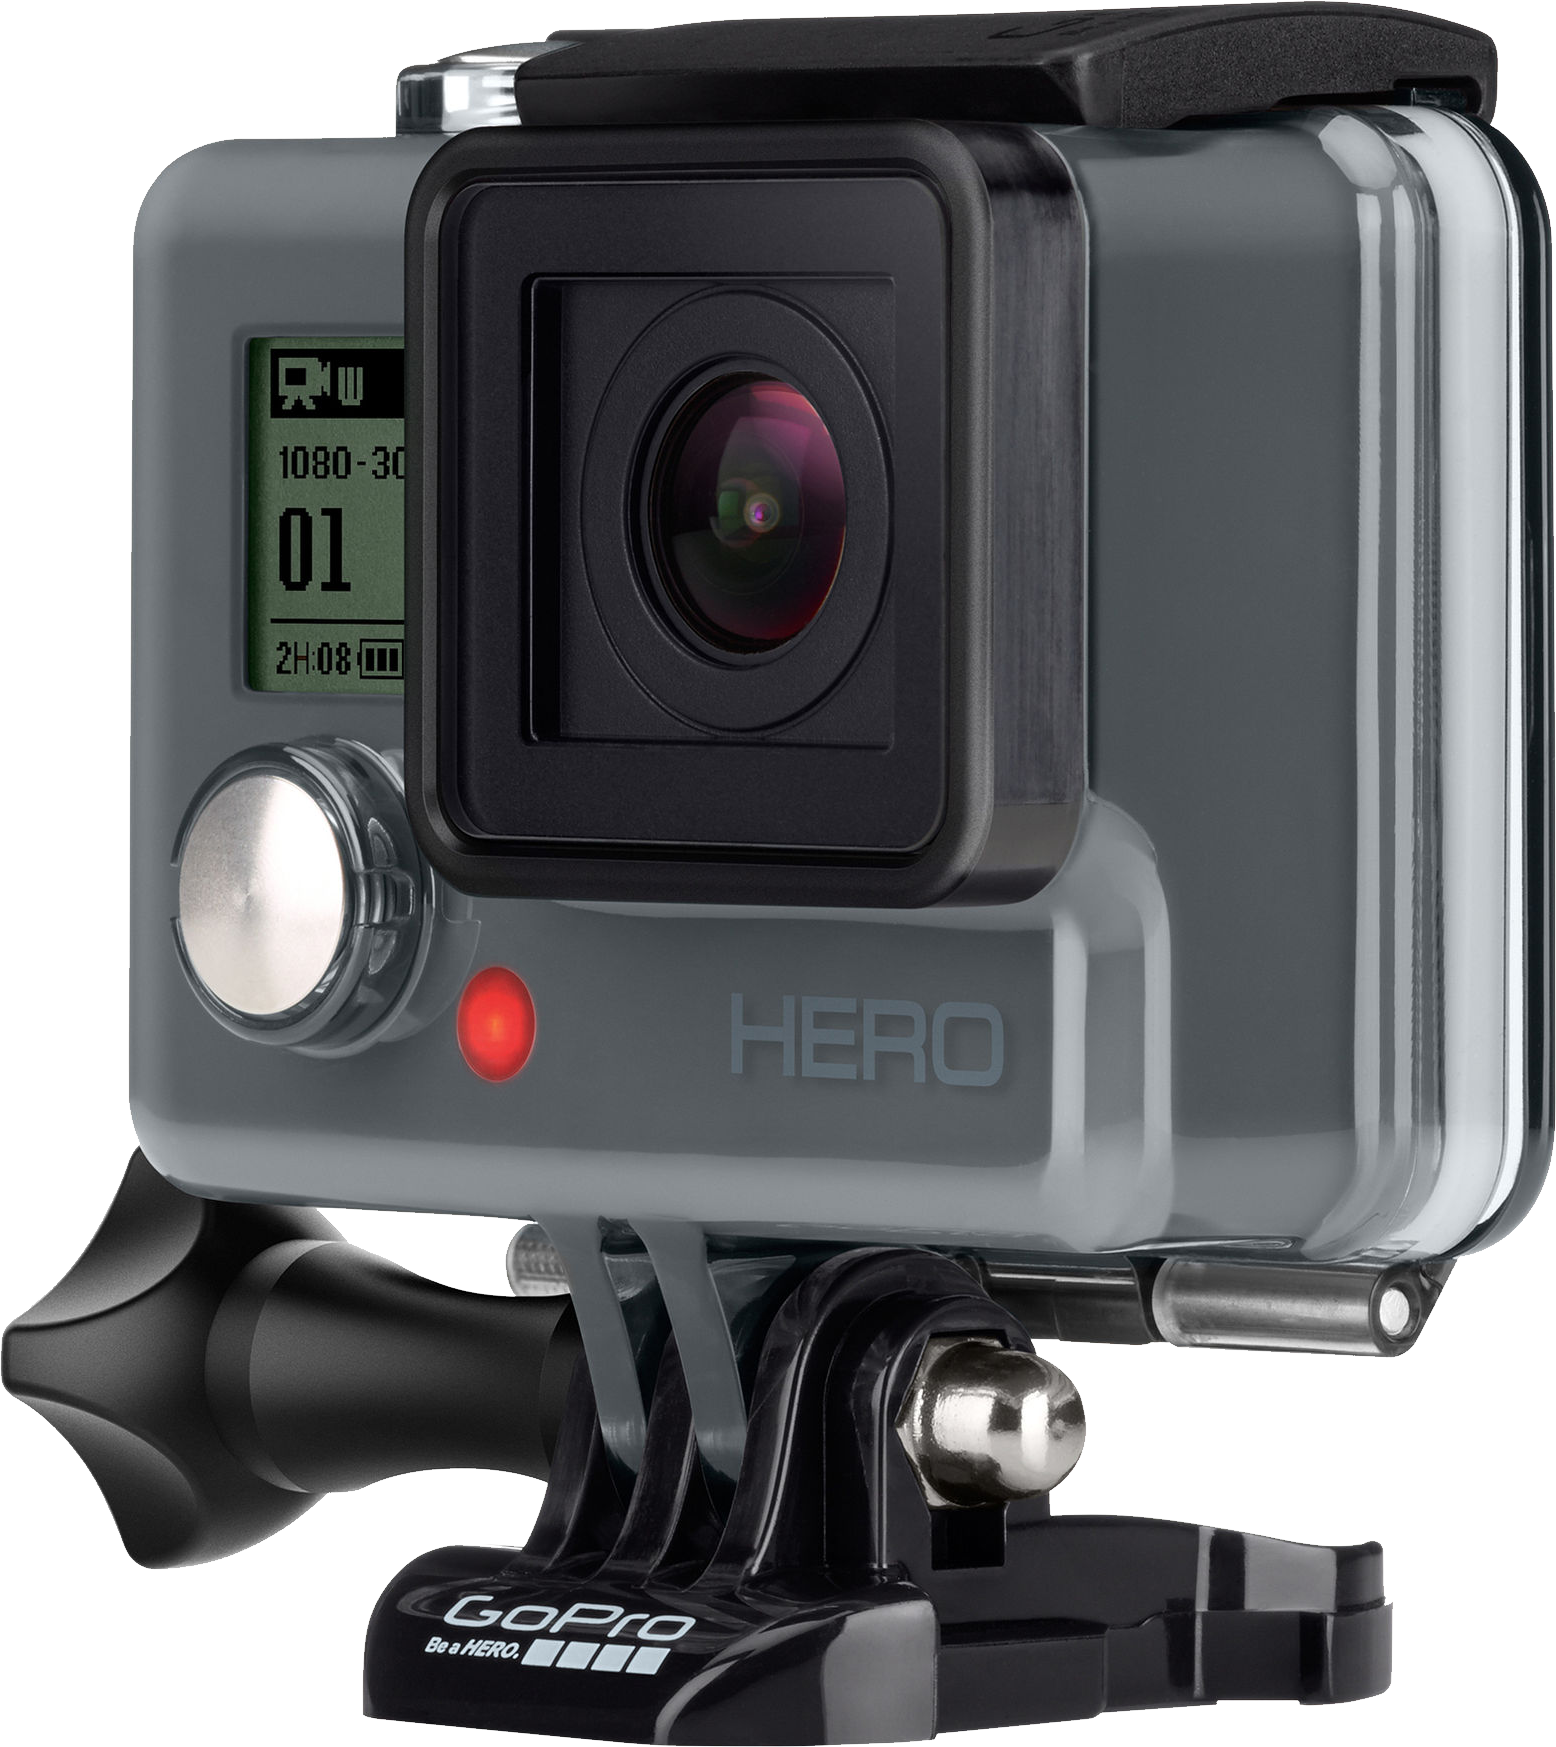 Use A Gopro As A Webcam